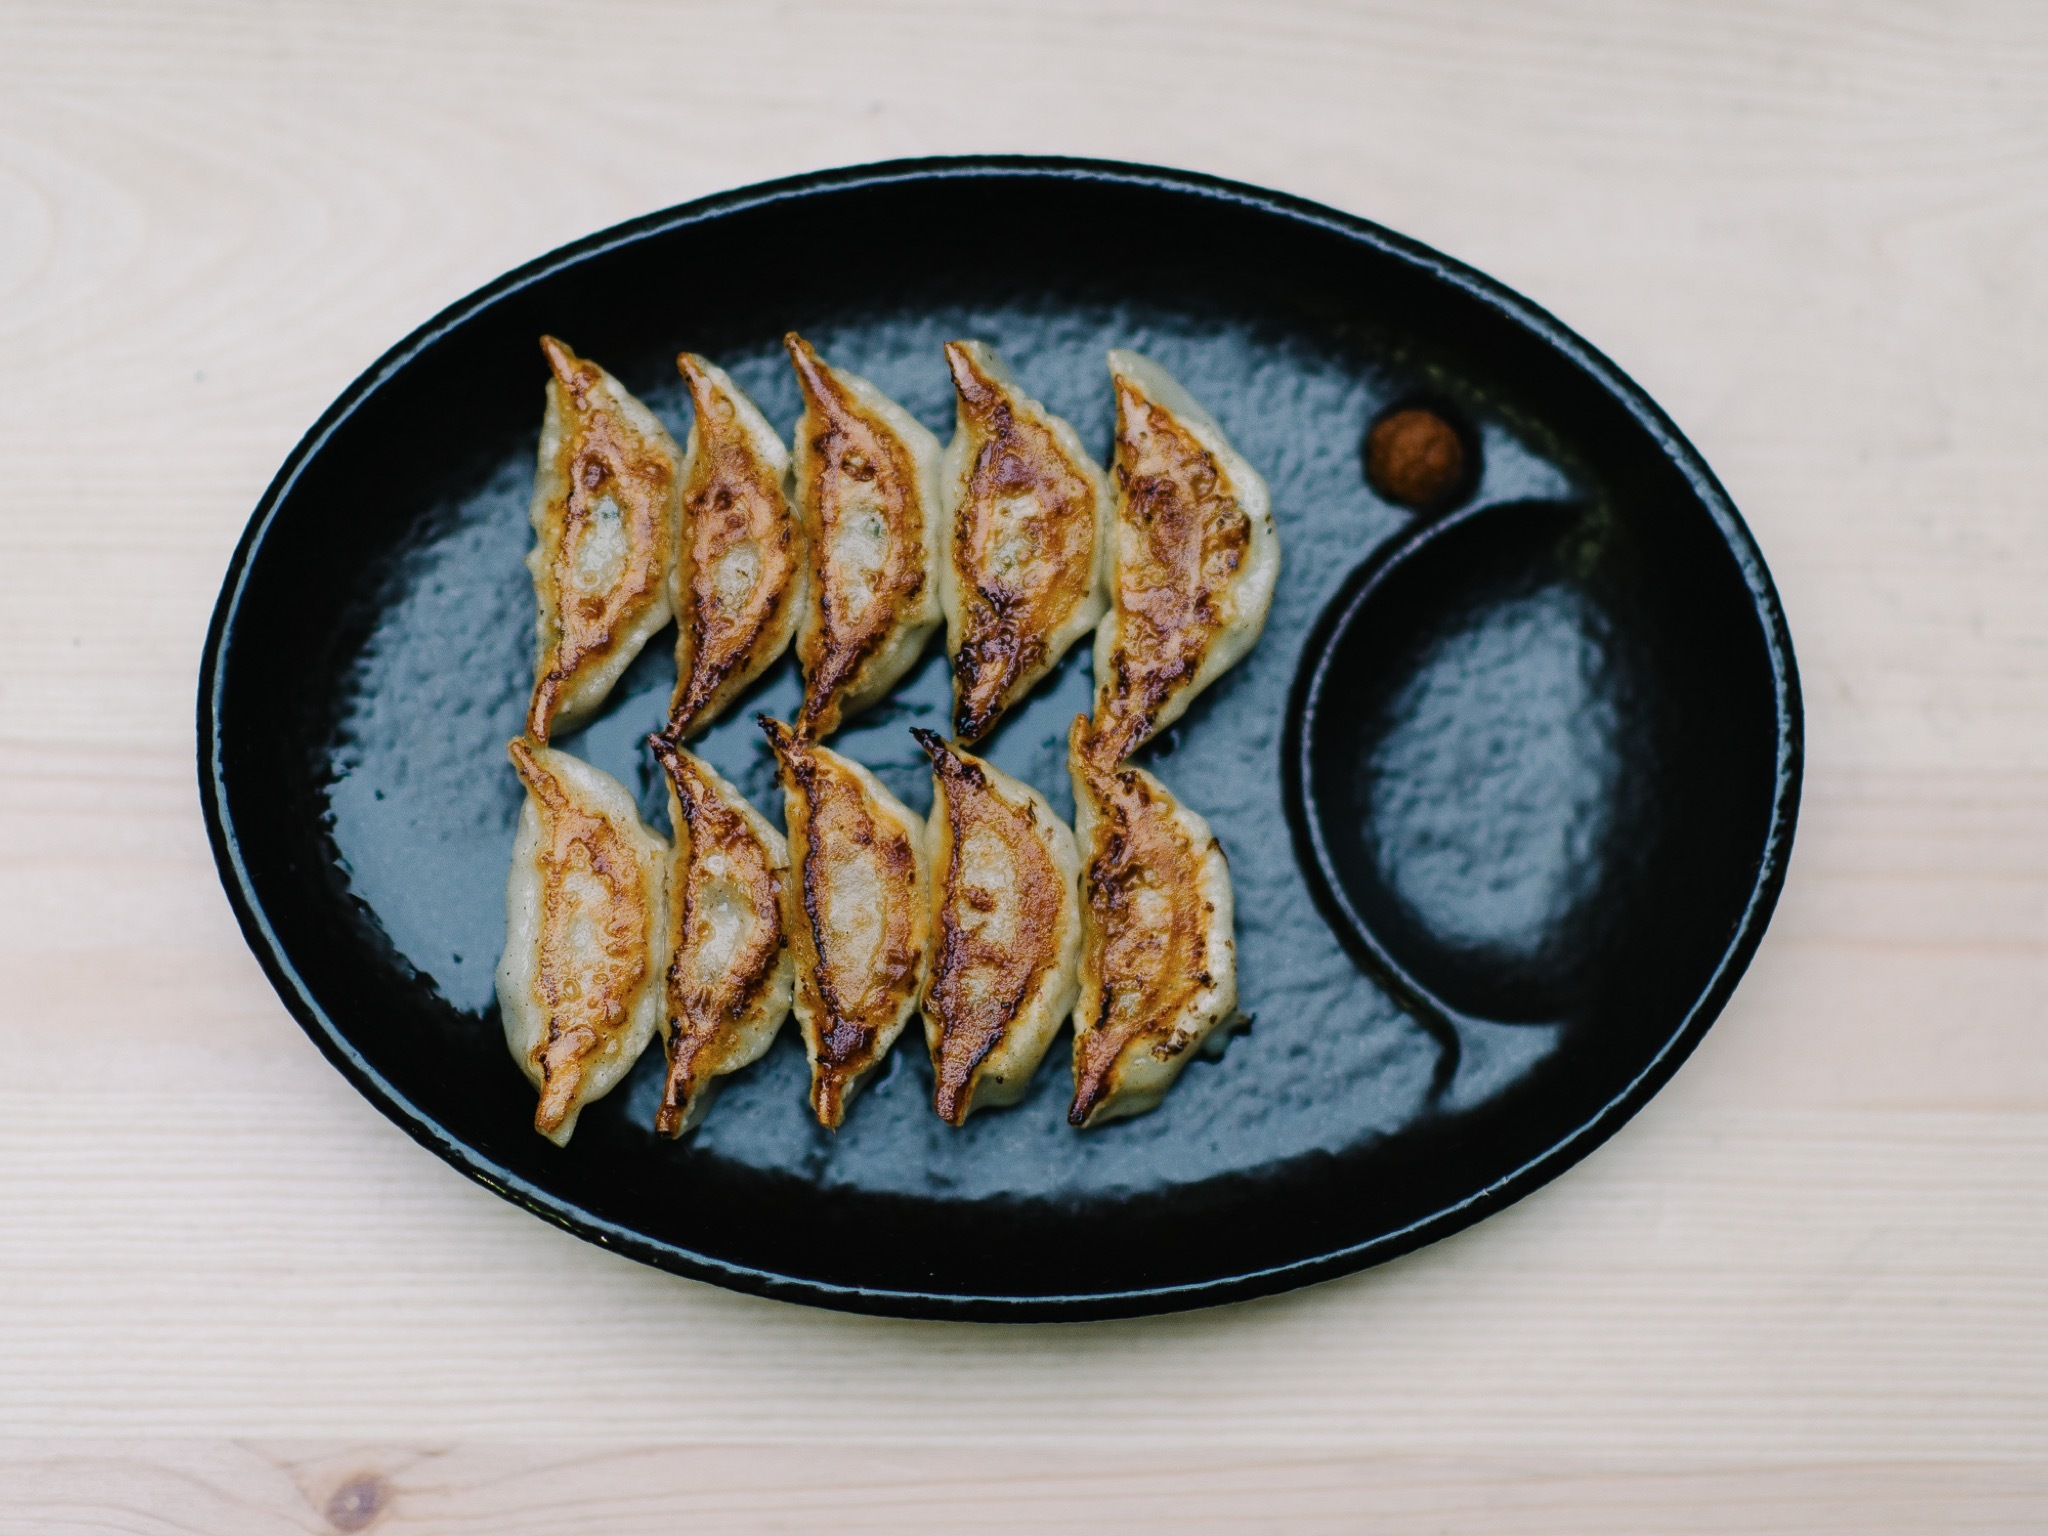 A plate of ten pieces of fried gyoza at Hakata Gensuke